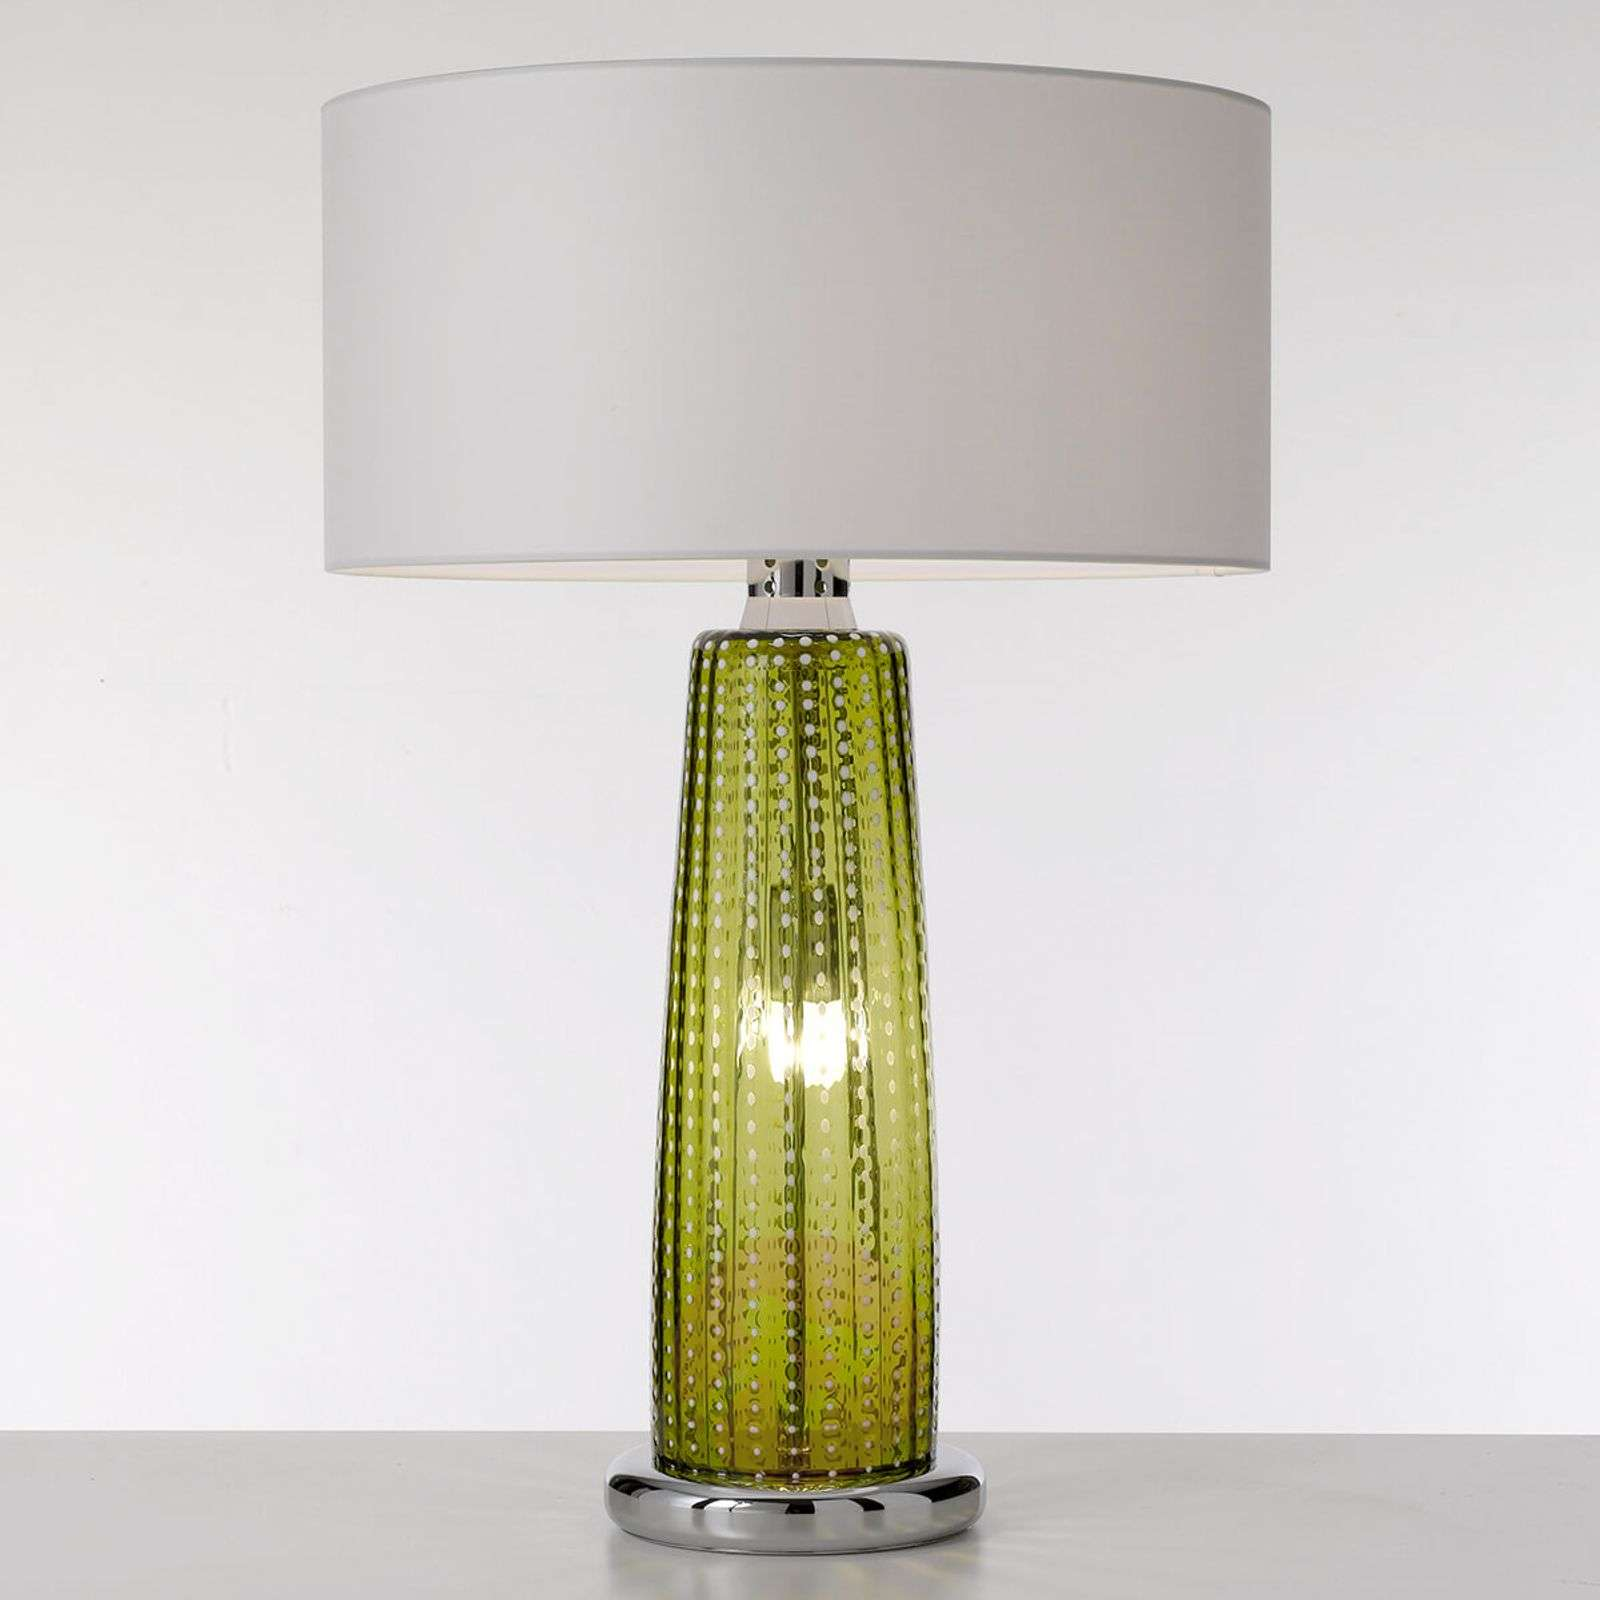 Perle apple green glass table lamp lights perle apple green glass table lamp 1053274 01 aloadofball